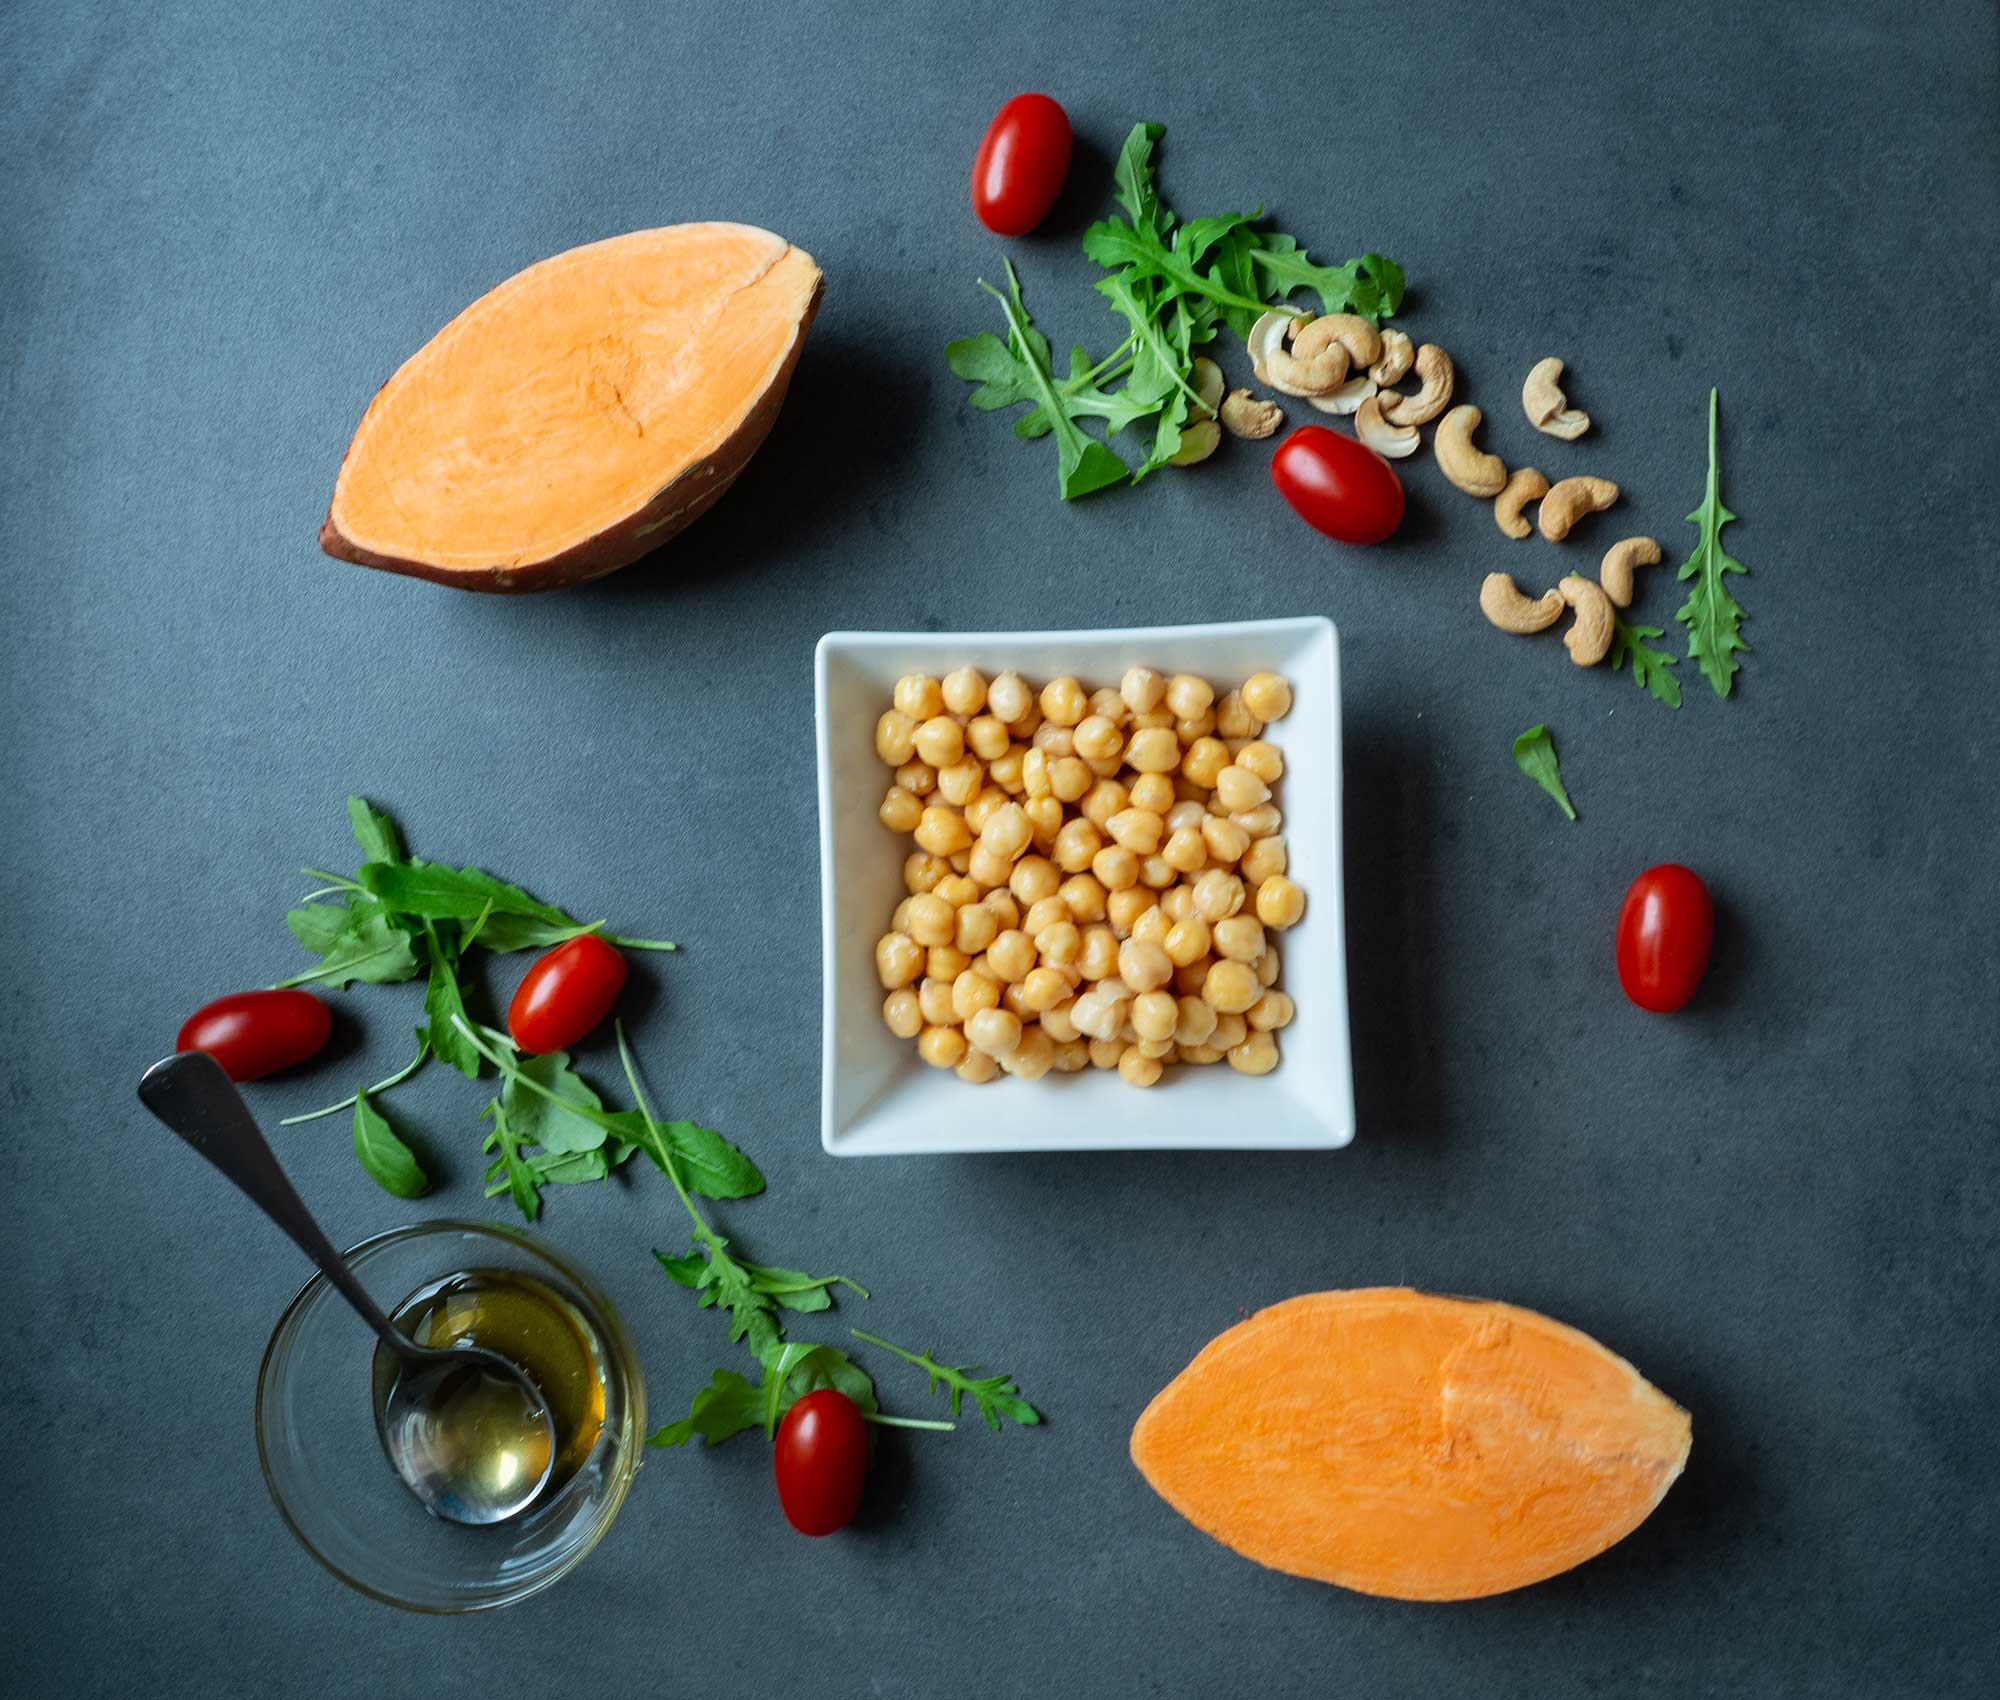 Salad with sweet potatoes, tomatoes